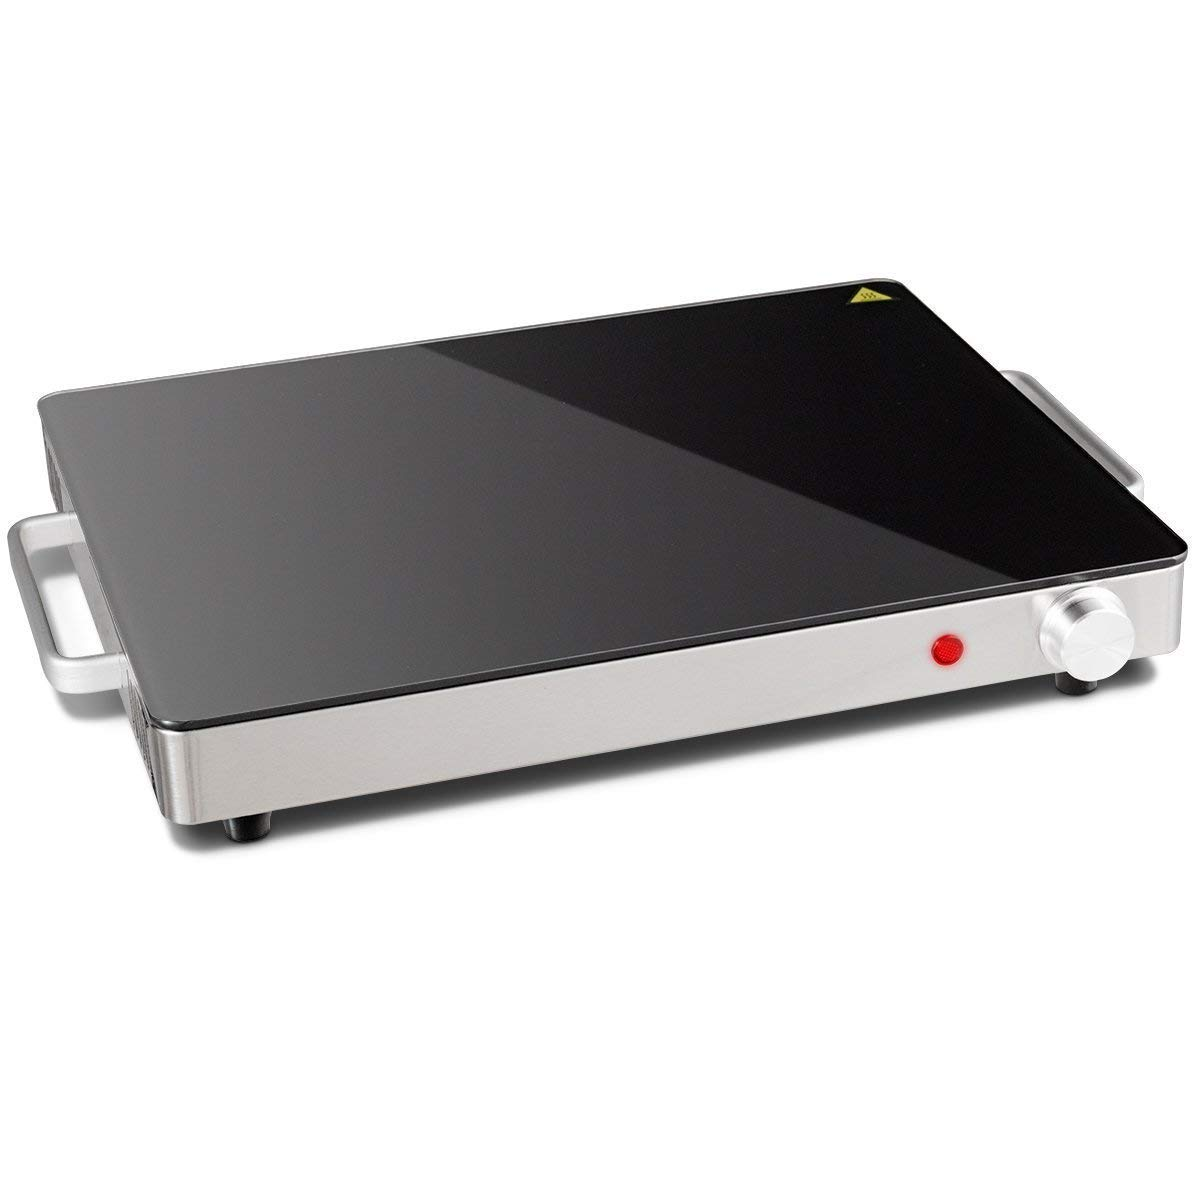 Giantex Warming Tray with Adjustable Temperature Control Perfect For Buffets, Restaurants and Home Dinners